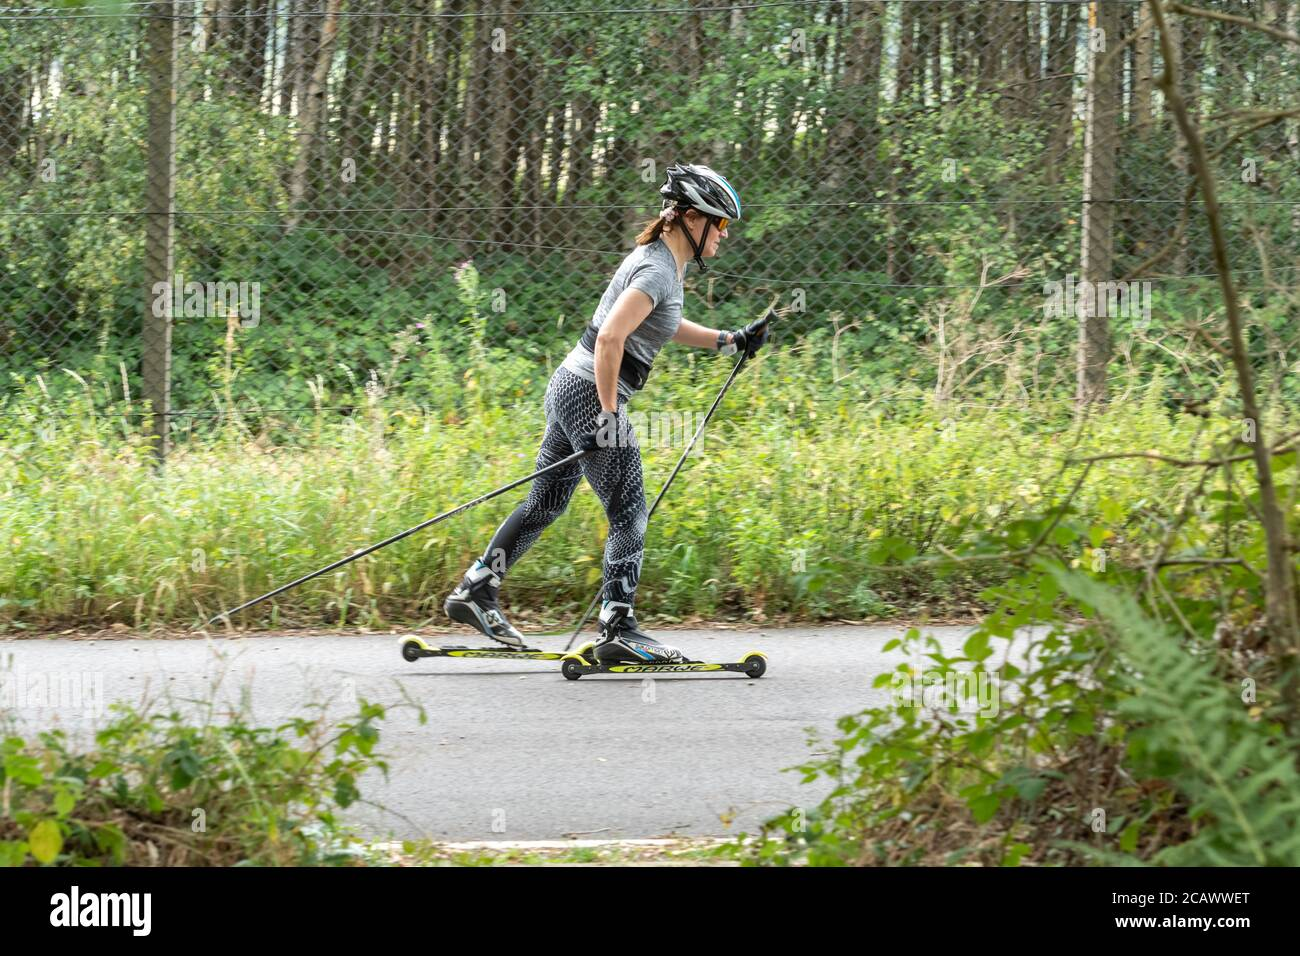 woman-roller-skiing-on-a-quiet-road-aldershot-uk-2CAWWET.jpg